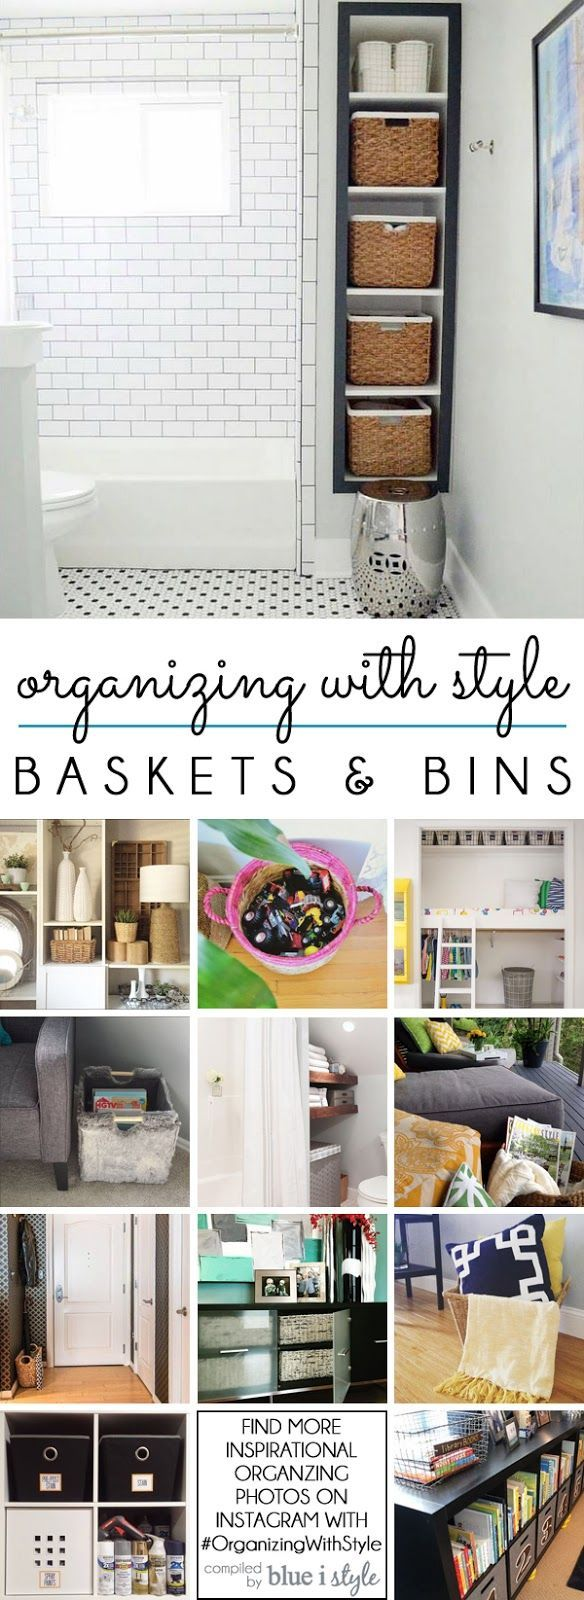 103 best Home Organization images on Pinterest | Cleaning, Home ...